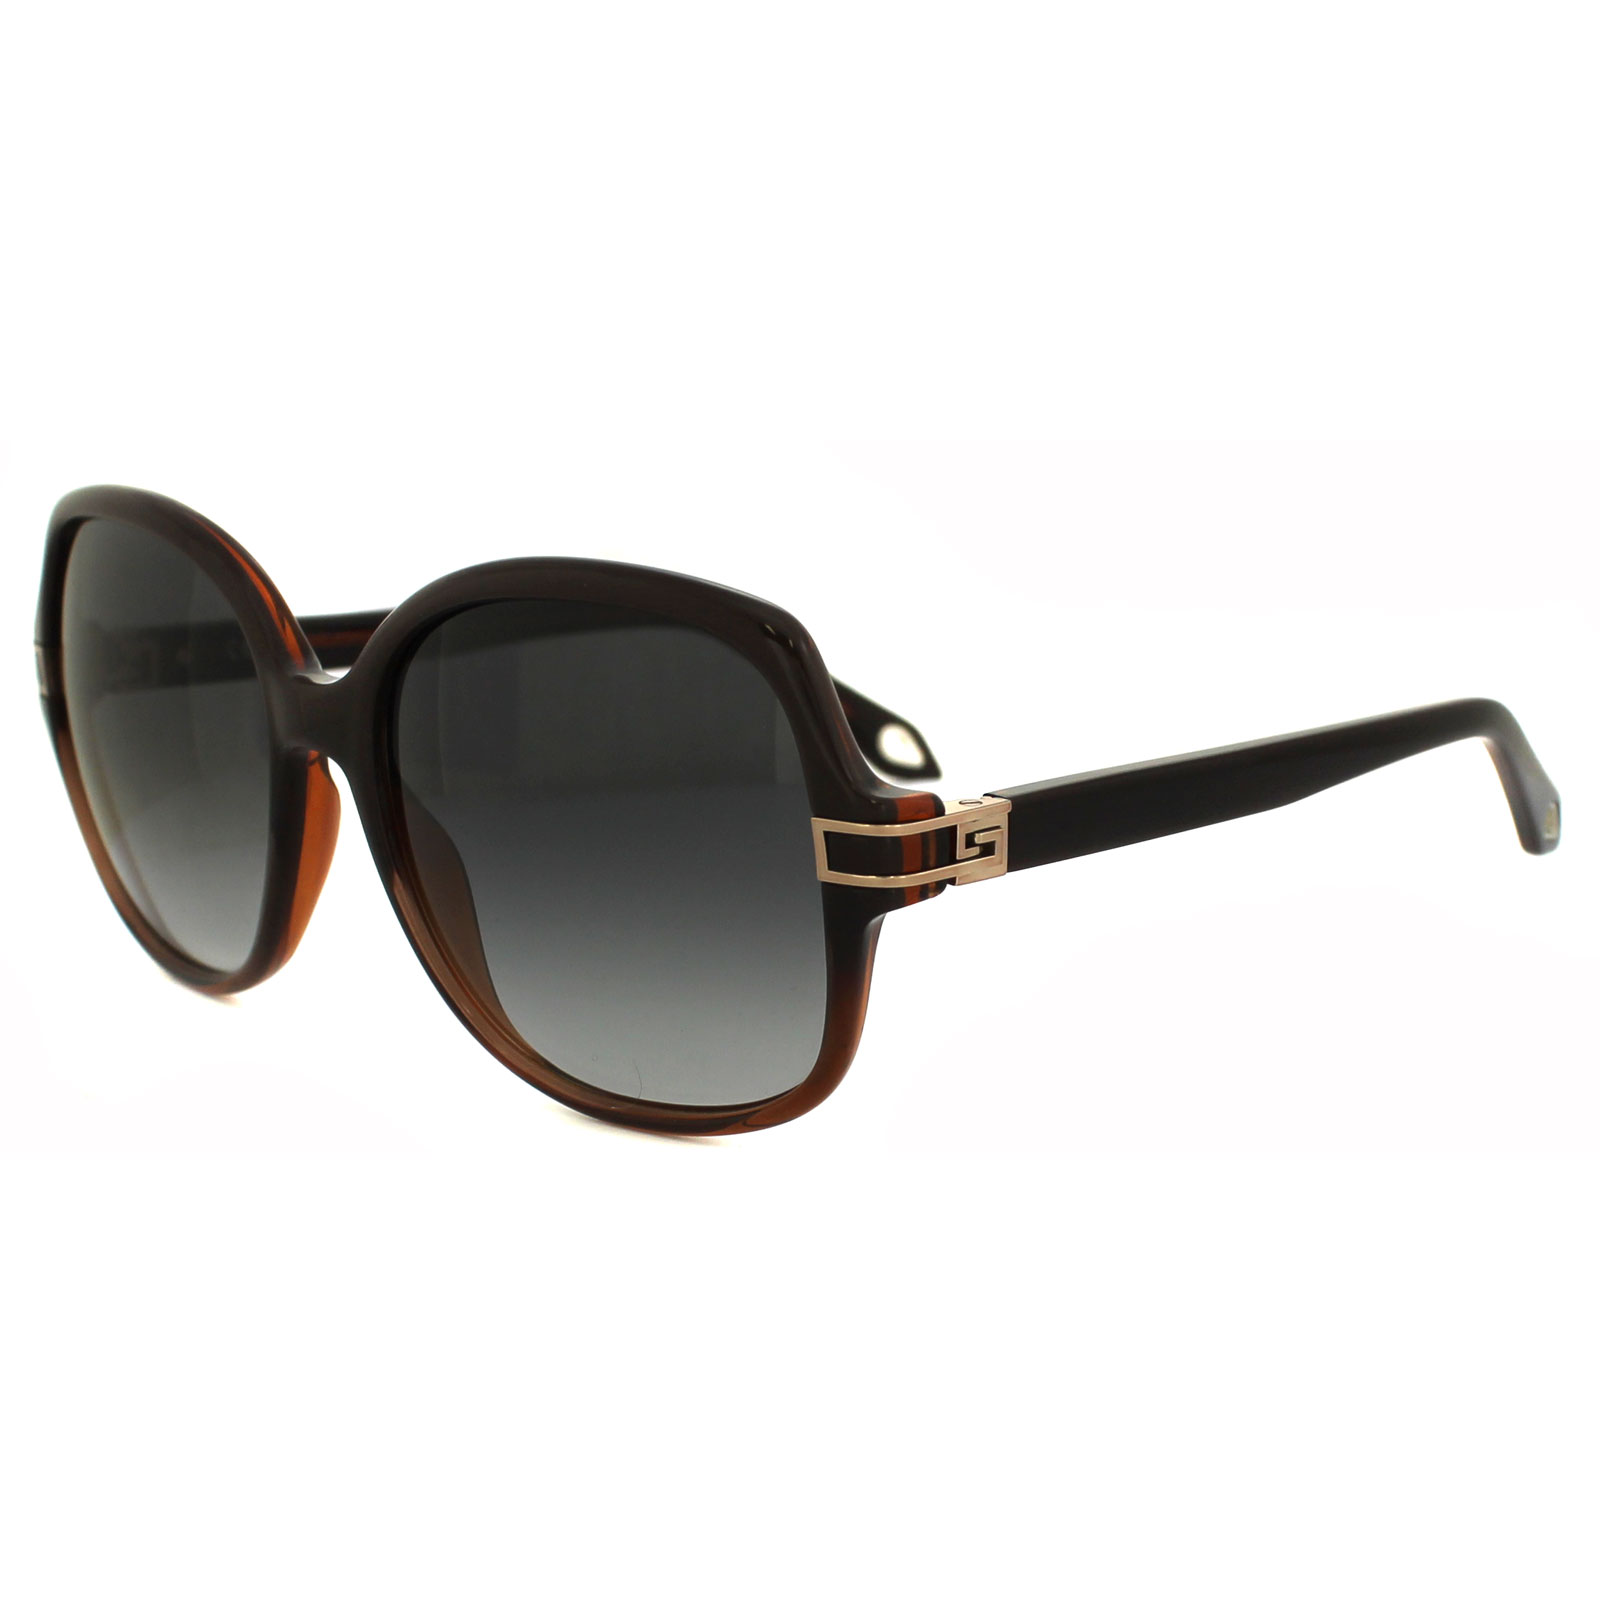 8772edb42b74 Cheap Givenchy SGV875 Sunglasses - Discounted Sunglasses